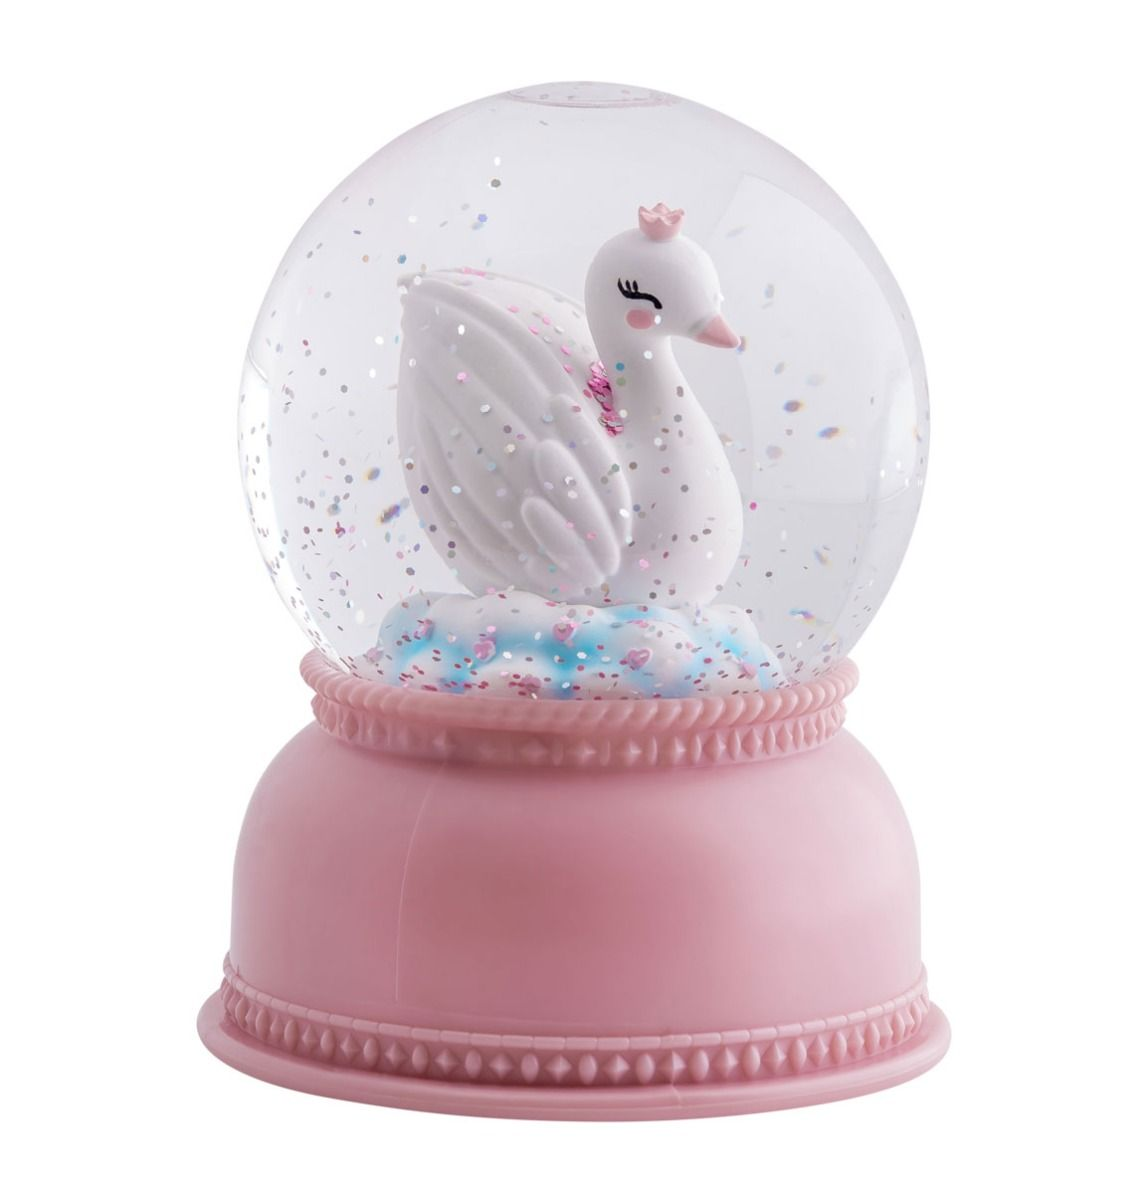 sglovl03-lr-1_snowglobe_light_swan